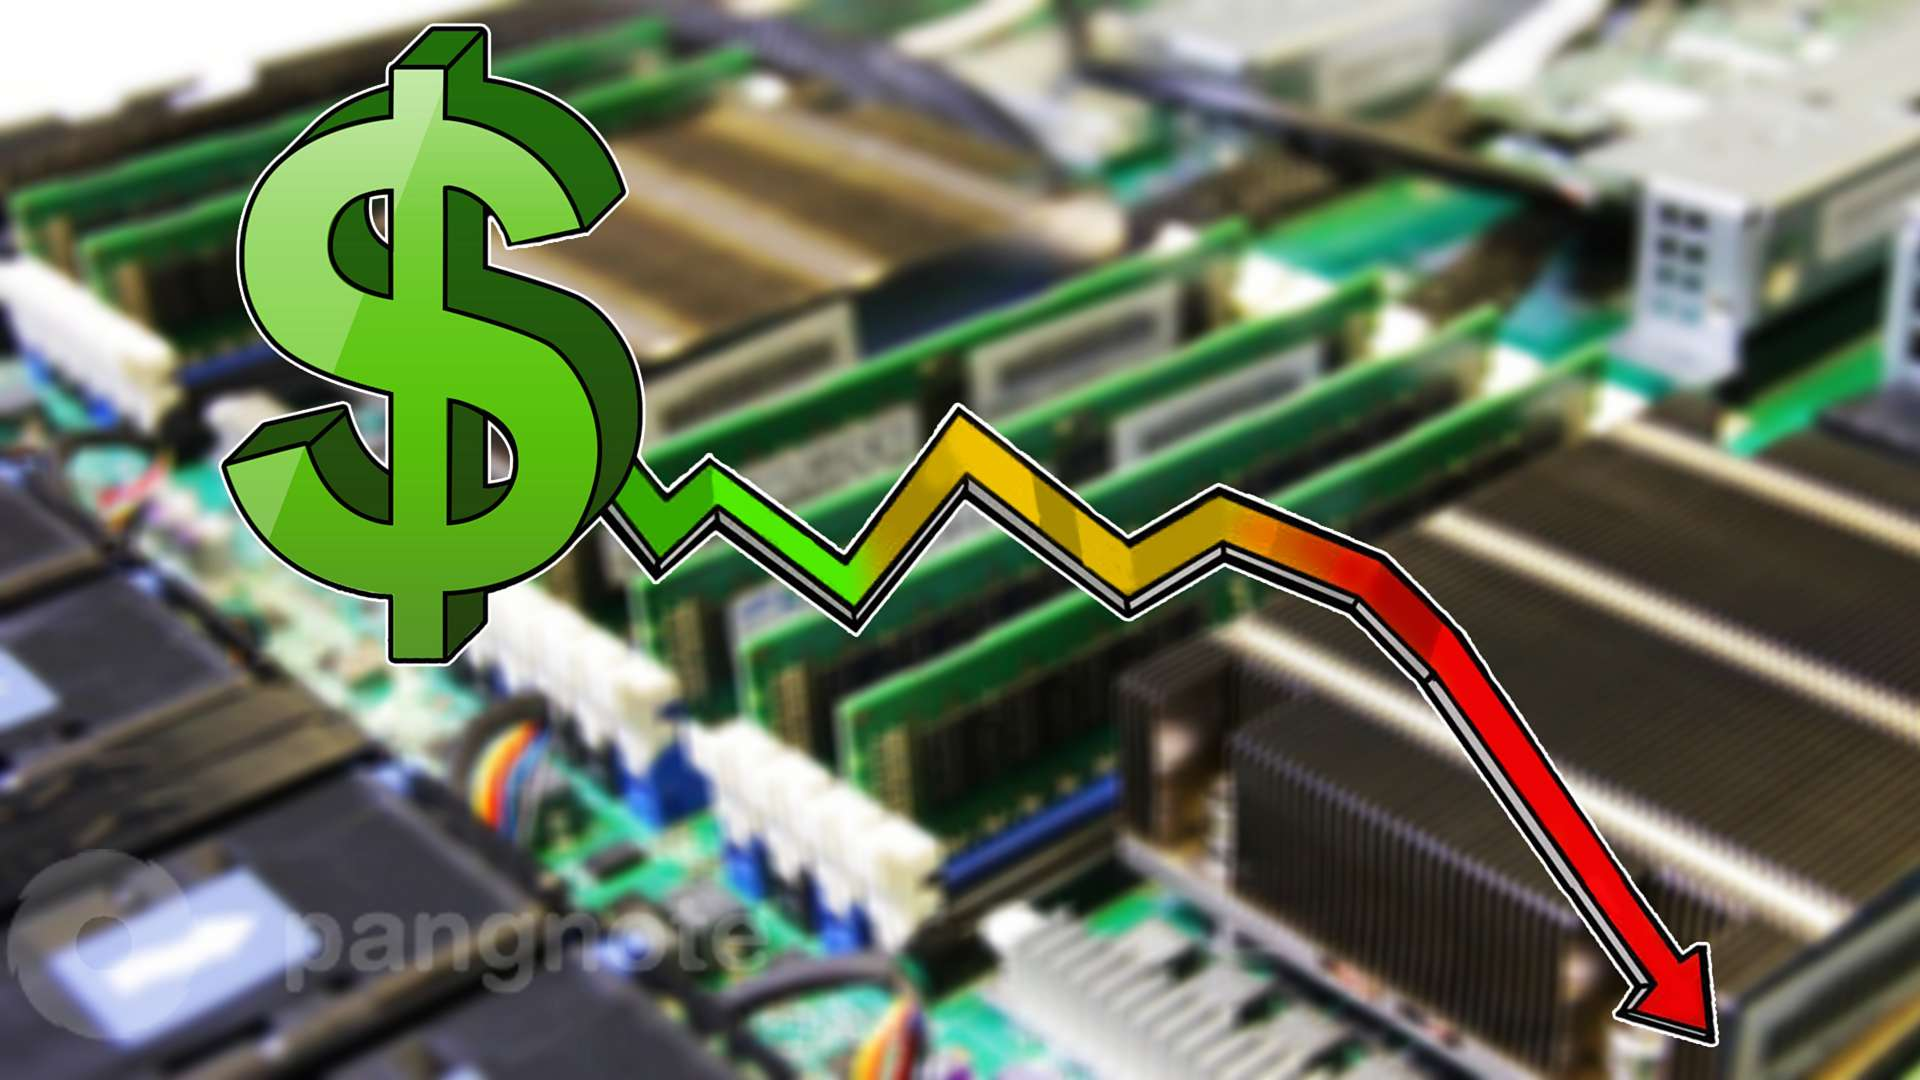 The RAM for the data centers will become cheaper